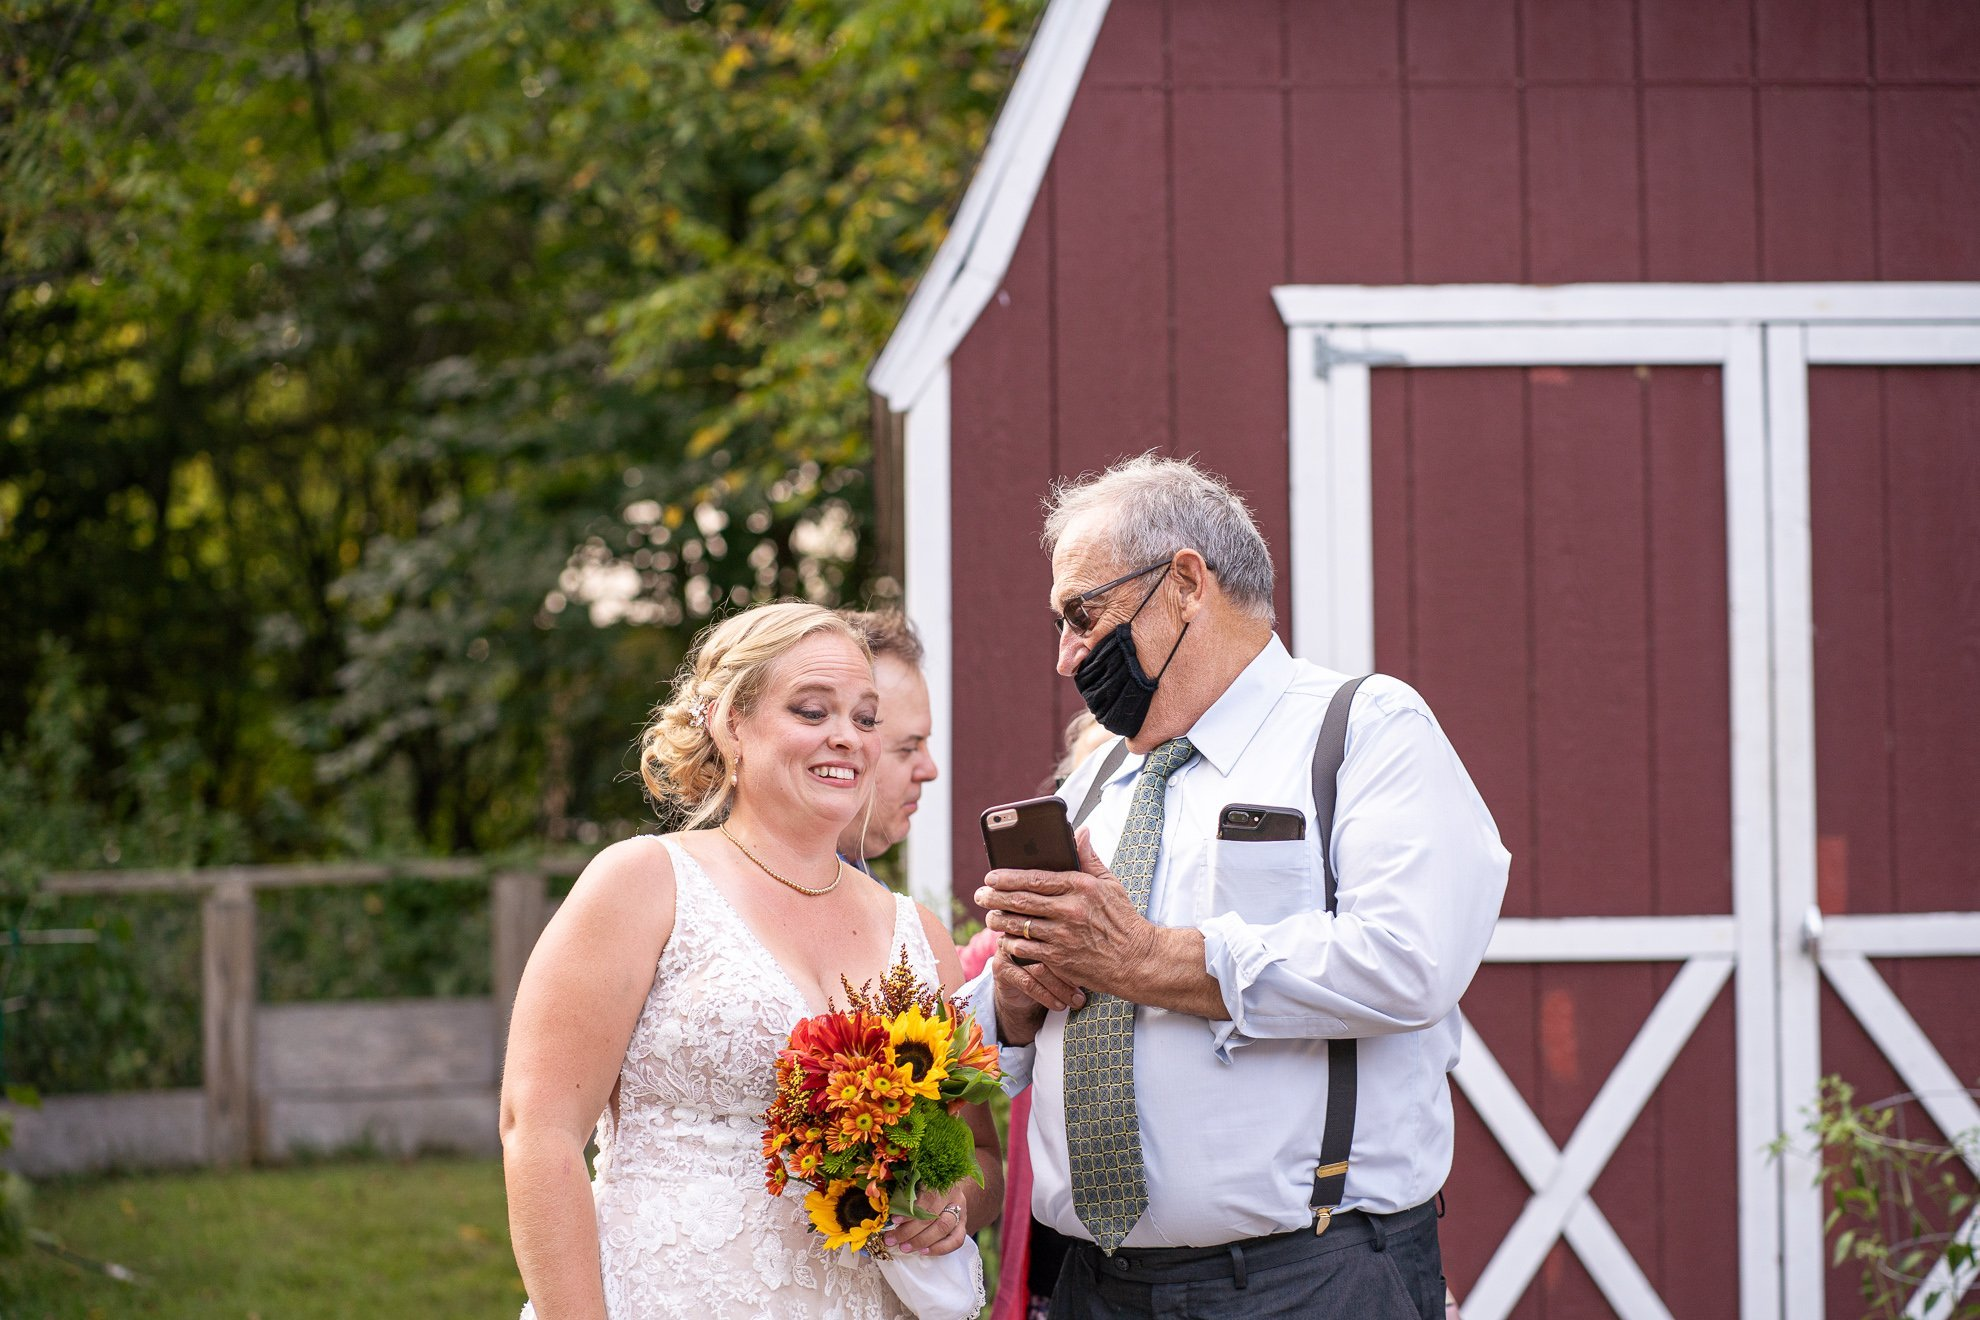 guest showing a picture on the cellphone to bride